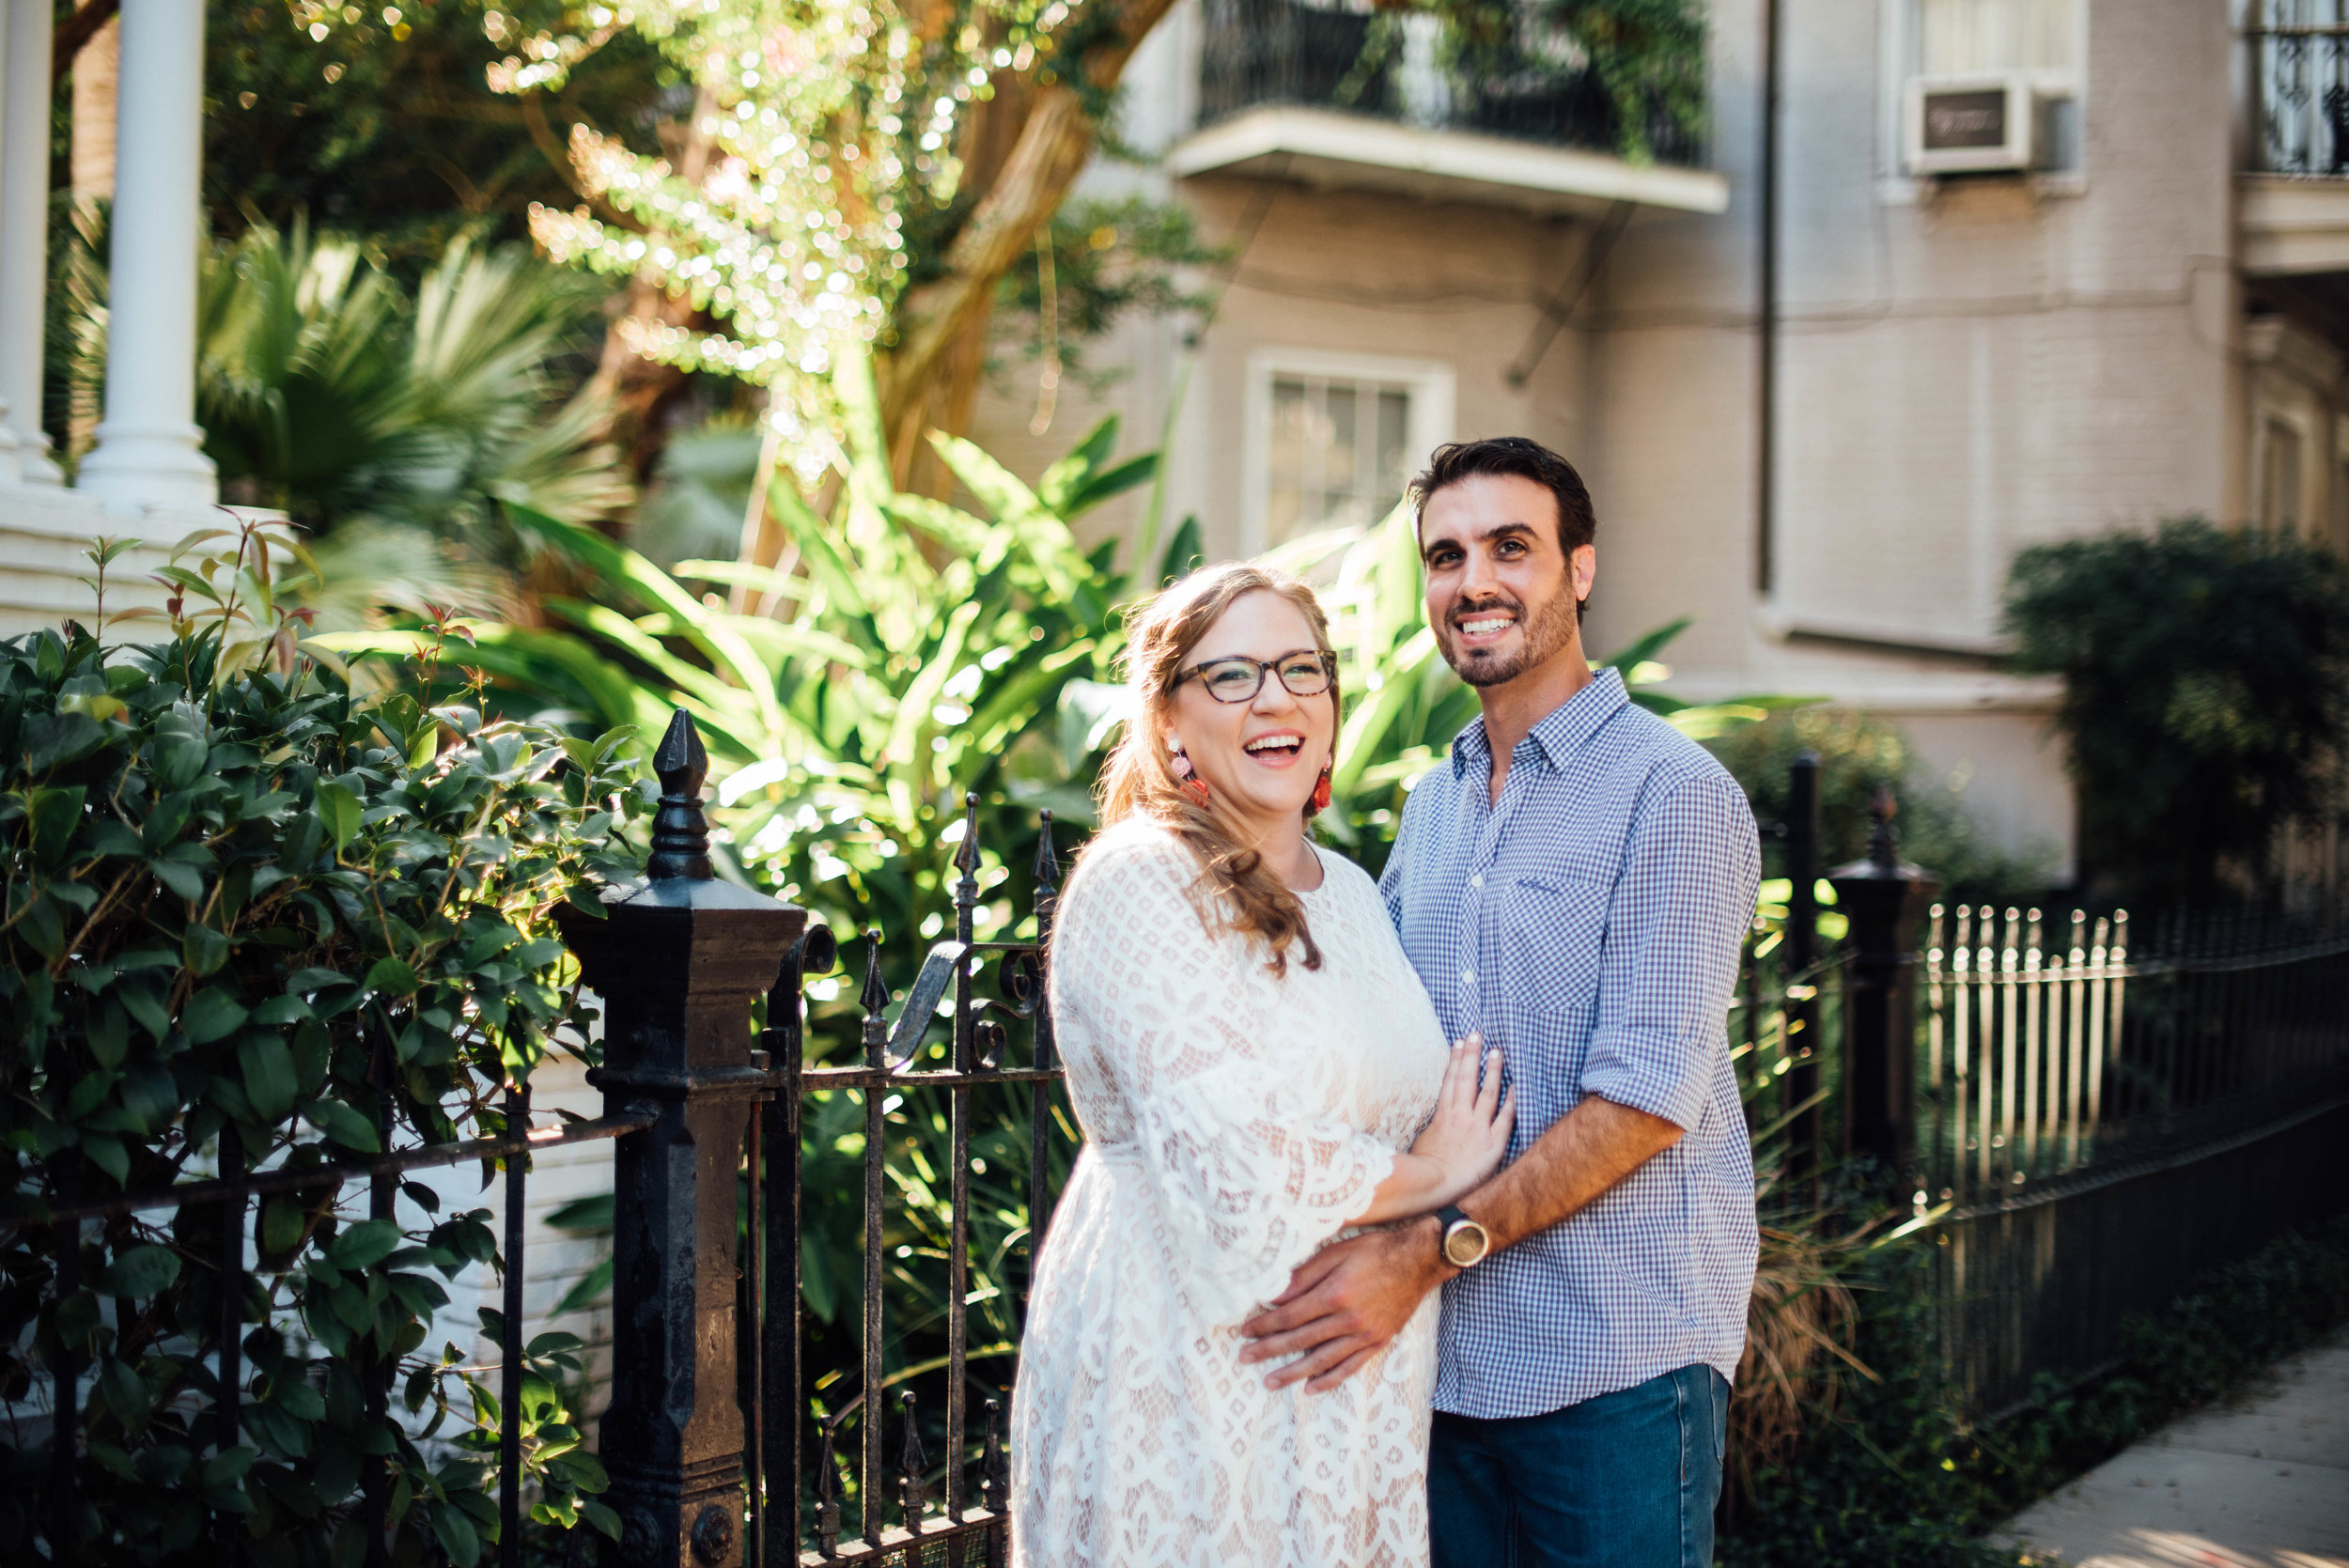 Jordan + Kent_French-Quarter-New-Orleans-City-Park-Engagement-Photos_Gabby Chapin_Print_0002.jpg